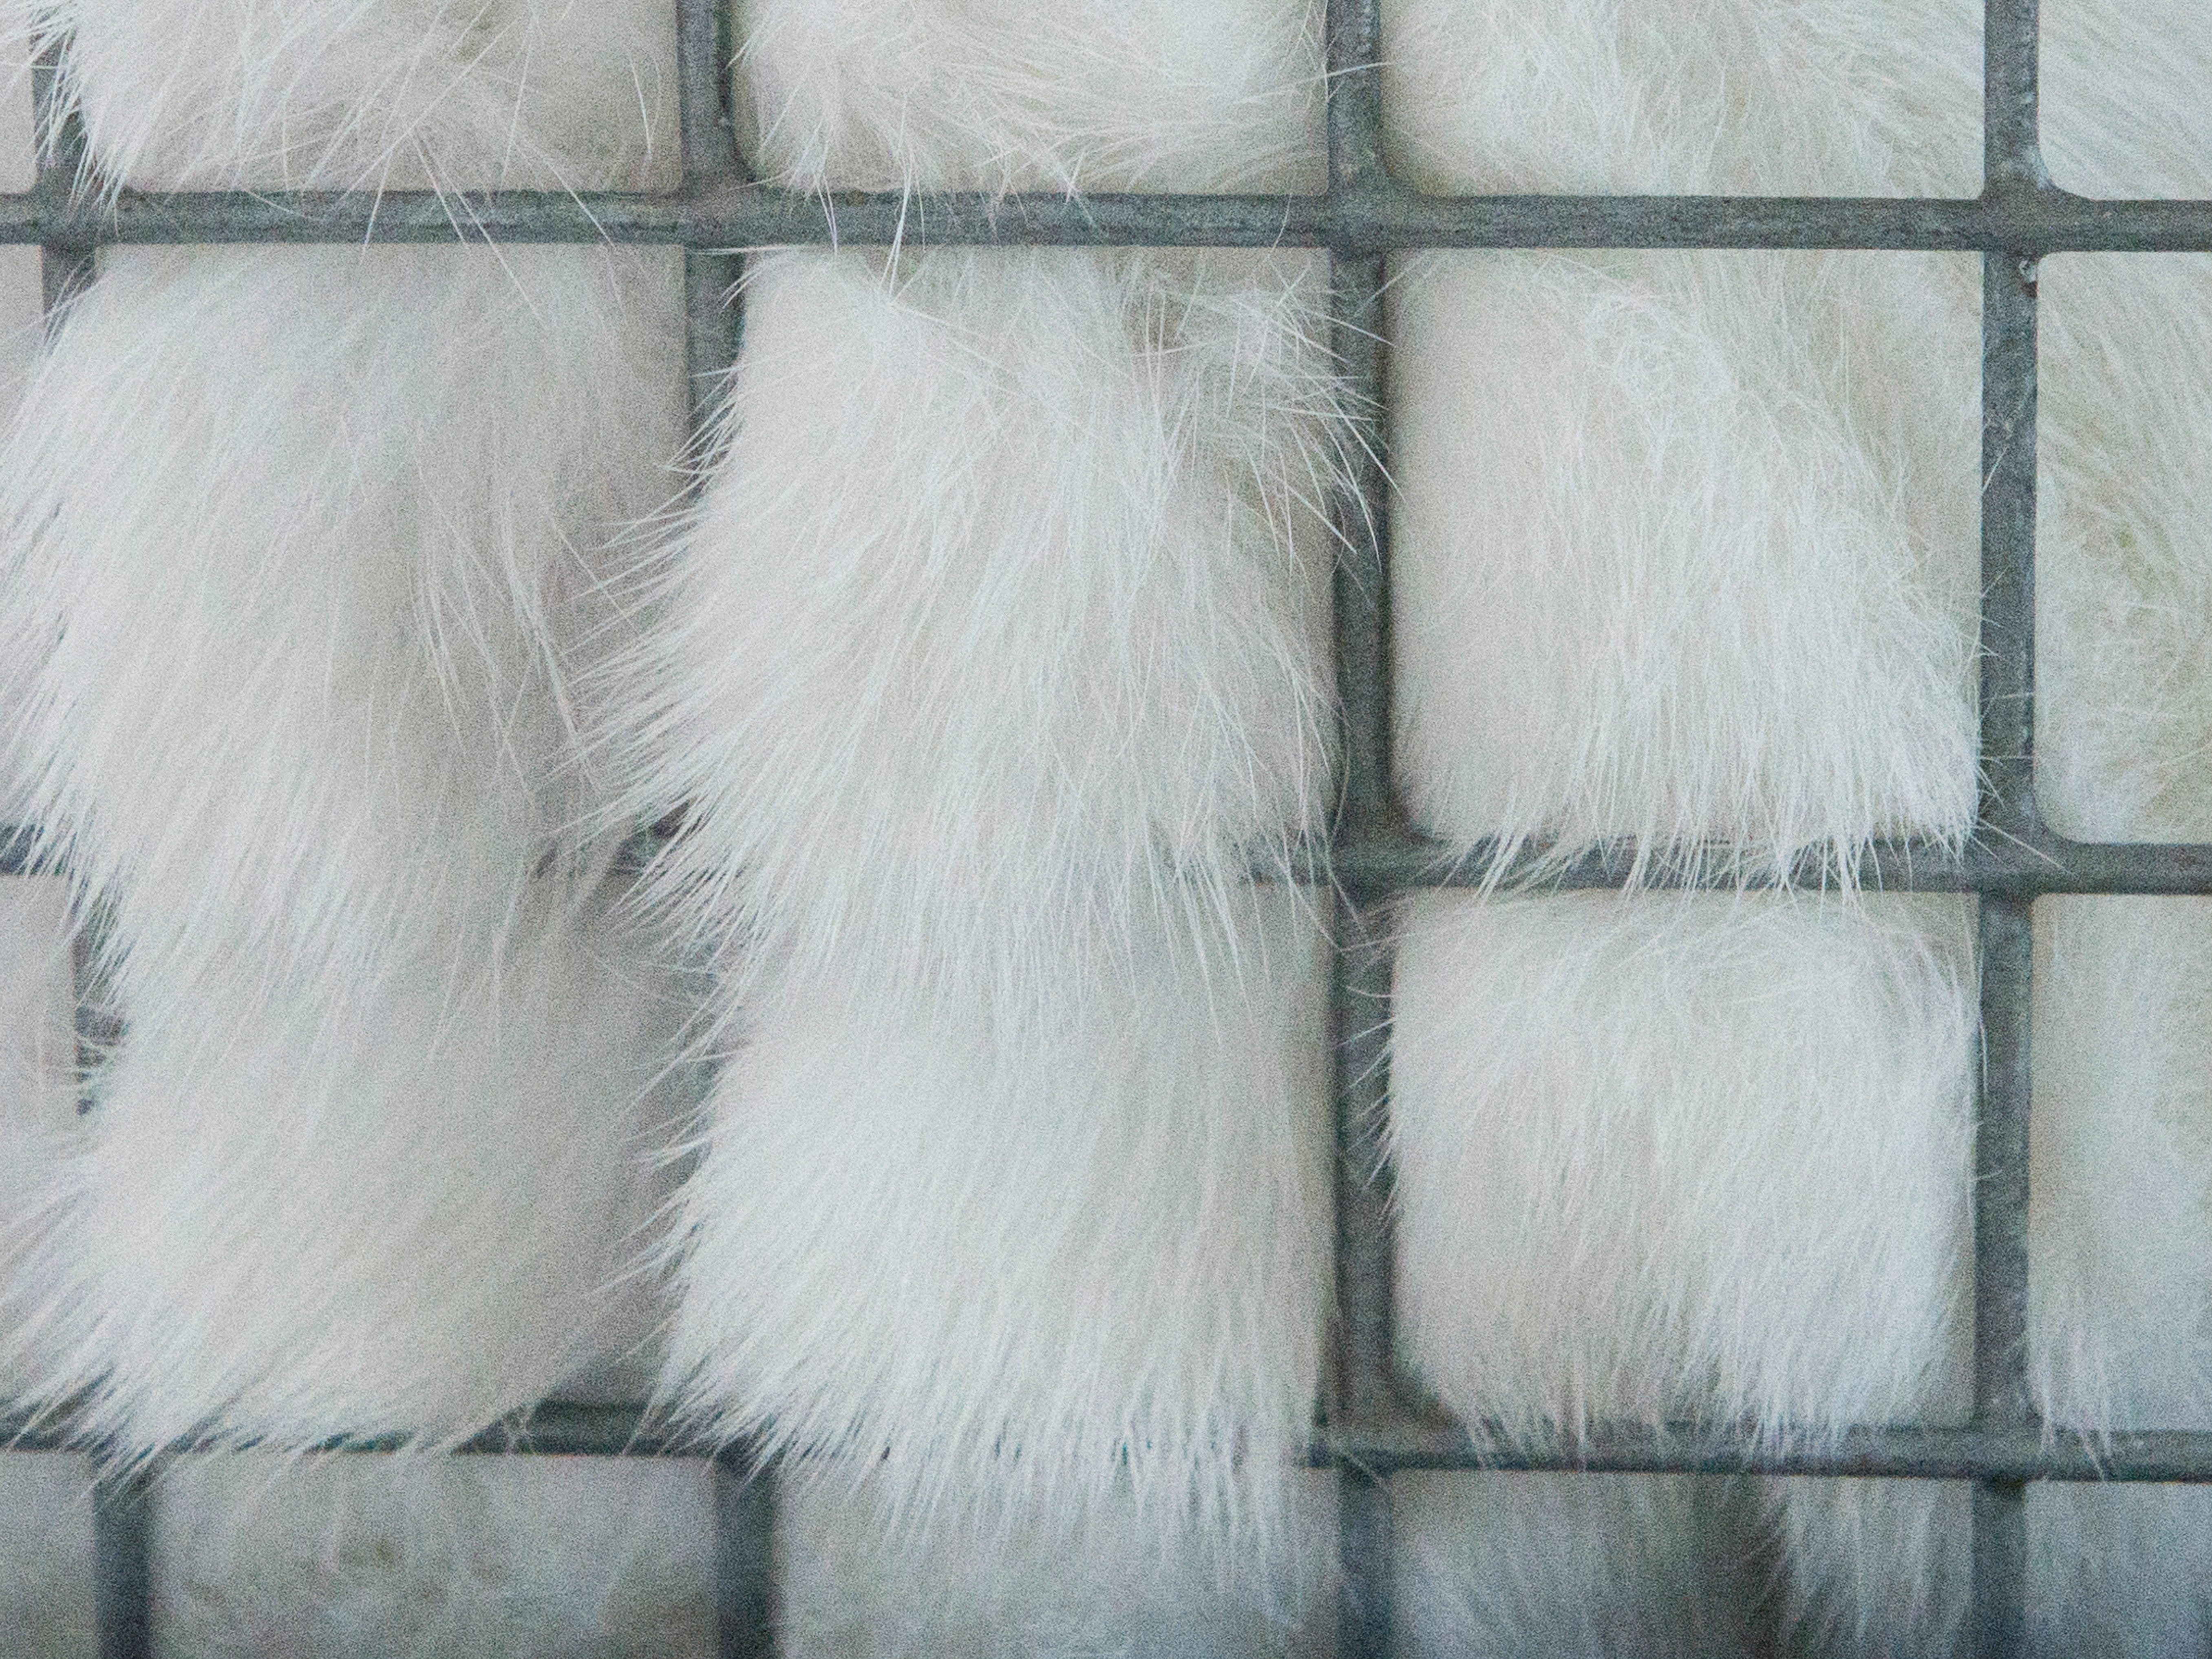 Rabbit fur protrudes from the enclosure during the Small Animal Showman of Showmen Contest at the Ross County Fair on August 9, 2018 in Chillicothe, Ohio.